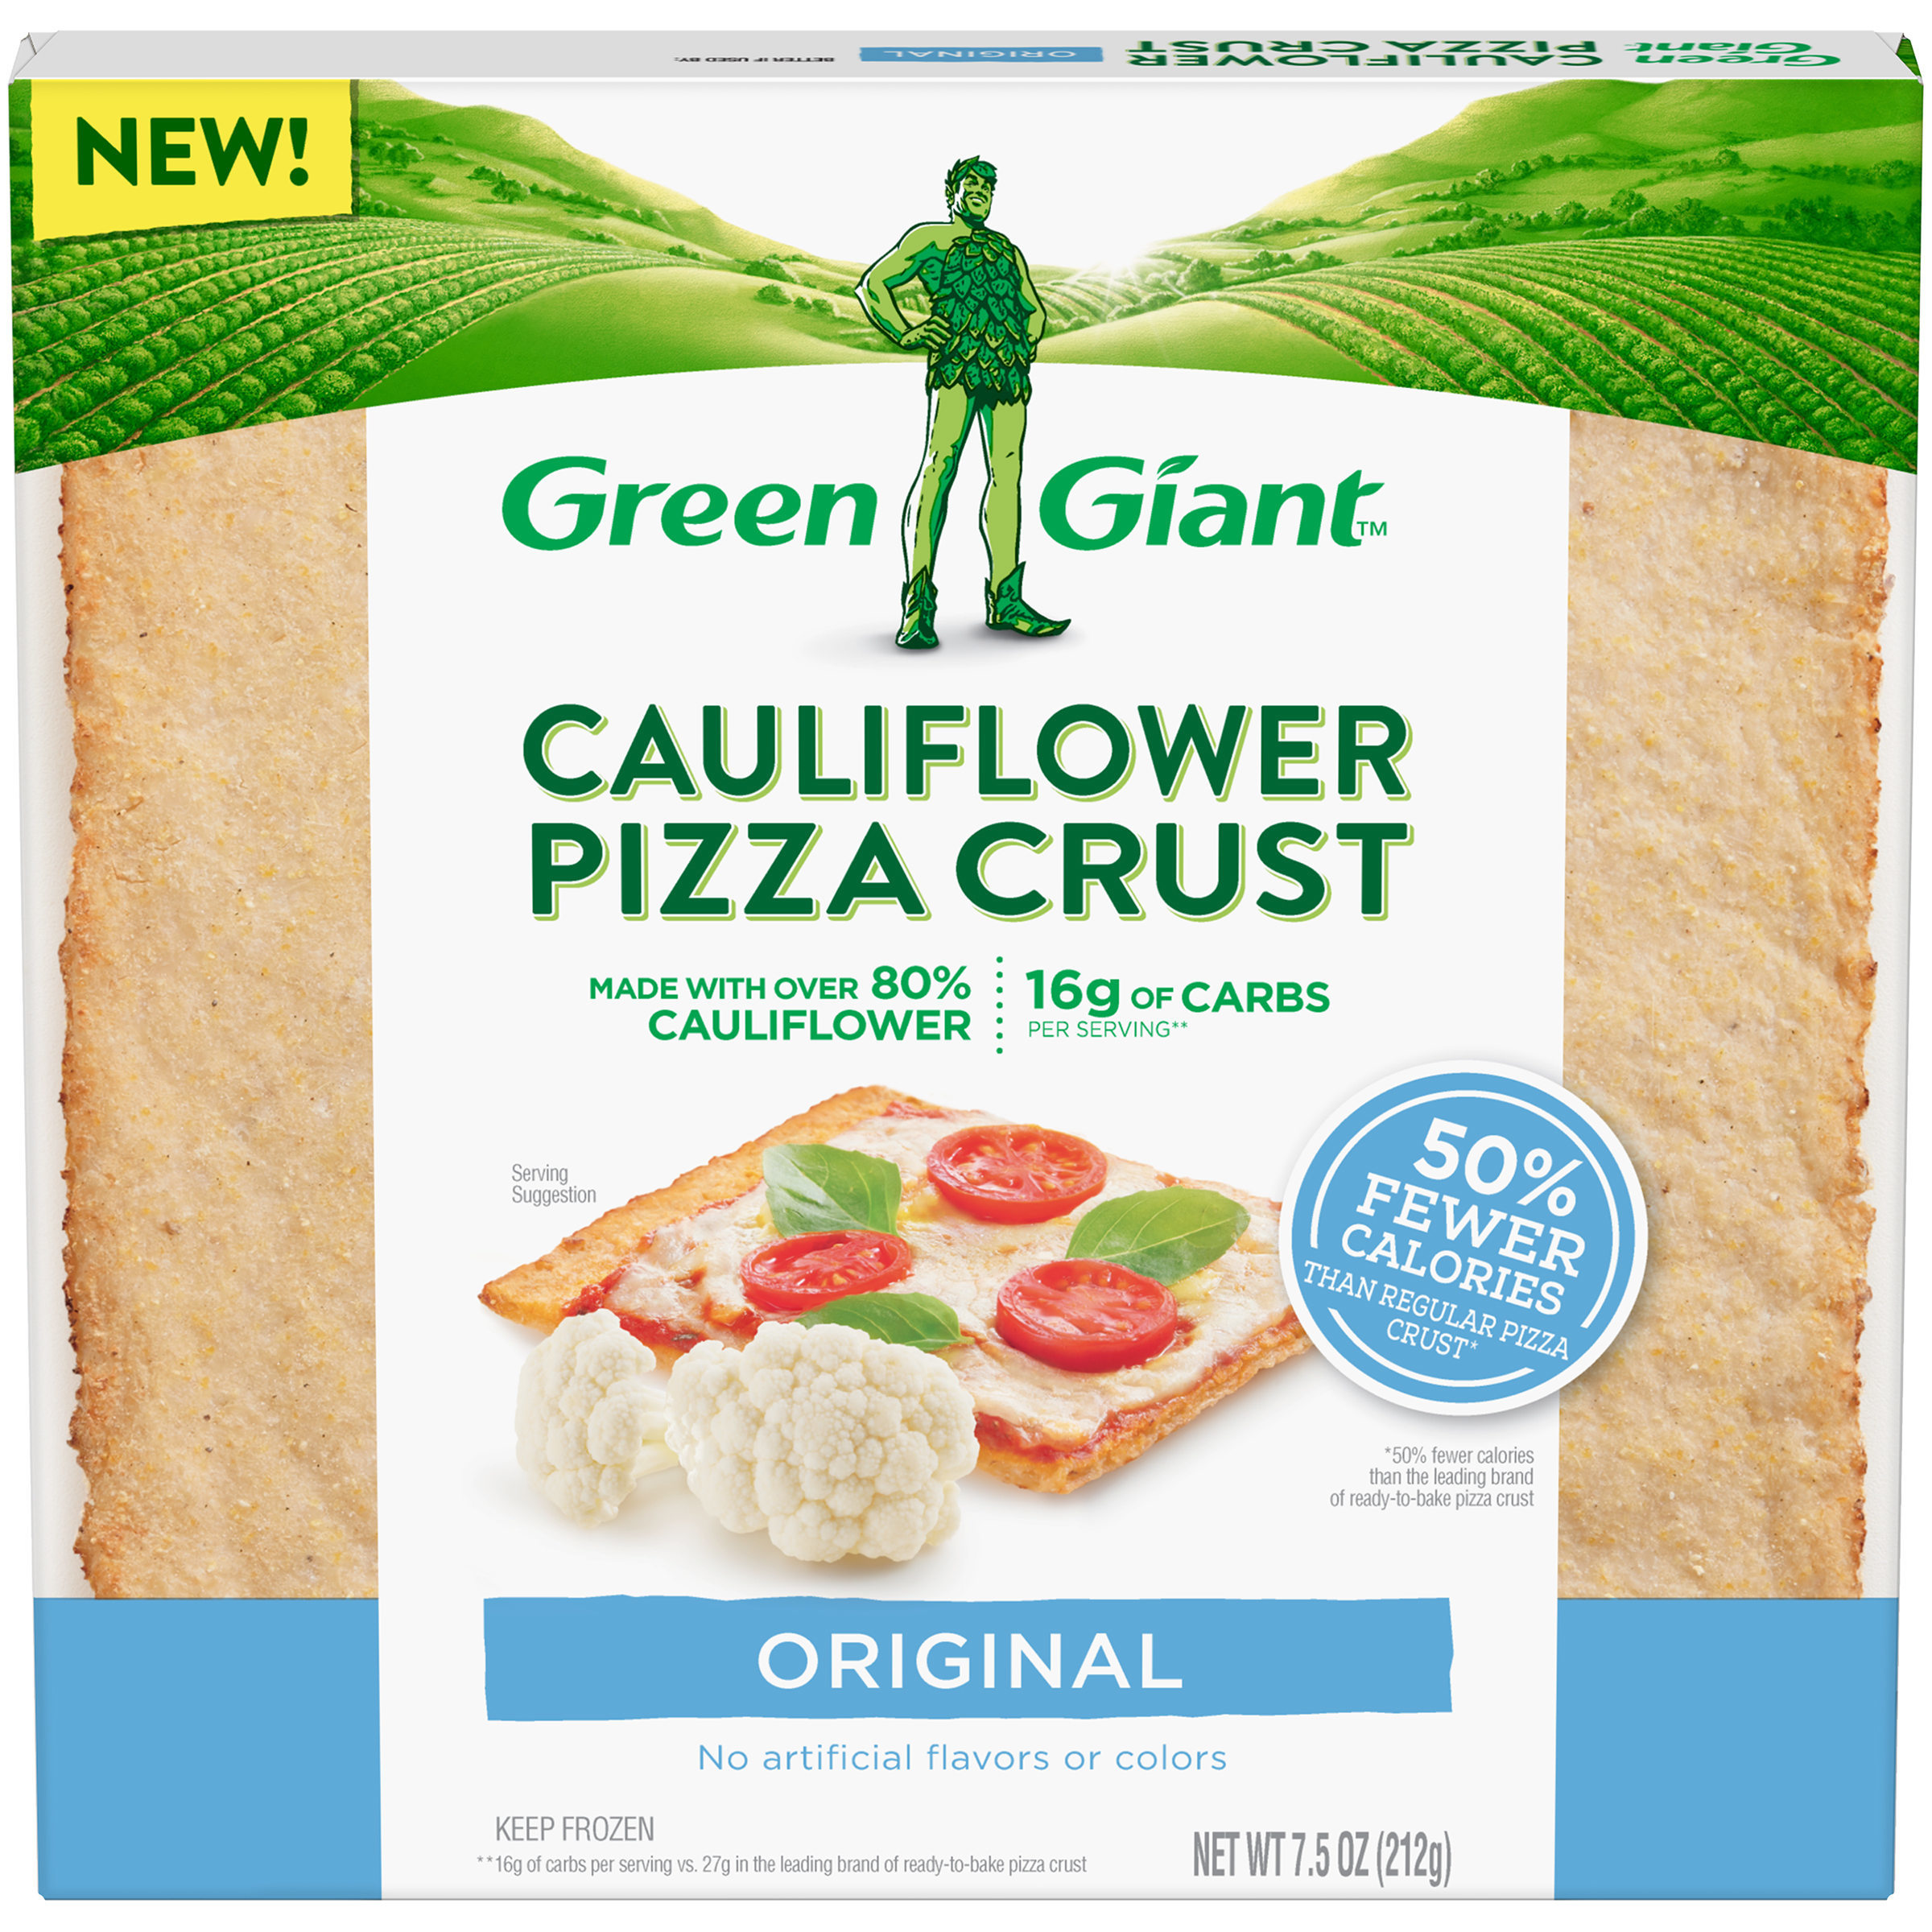 Print a coupon for $1 off one box of Green Giant Cauliflower Pizza Crust 5